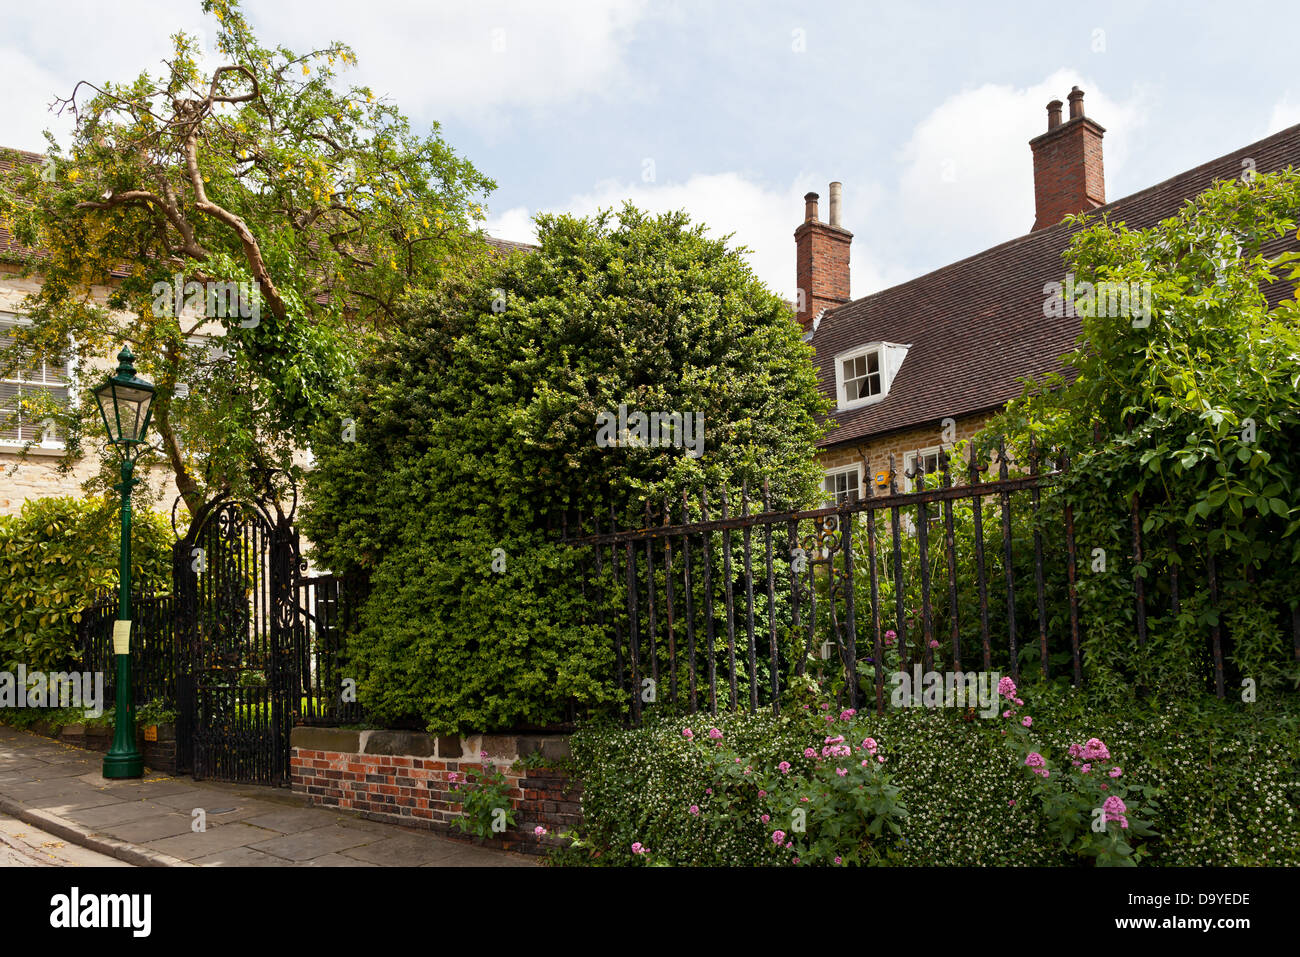 Lincoln - Garden at Greestone terrace; Lincoln, Lincolnshire, UK, Europe - Stock Image